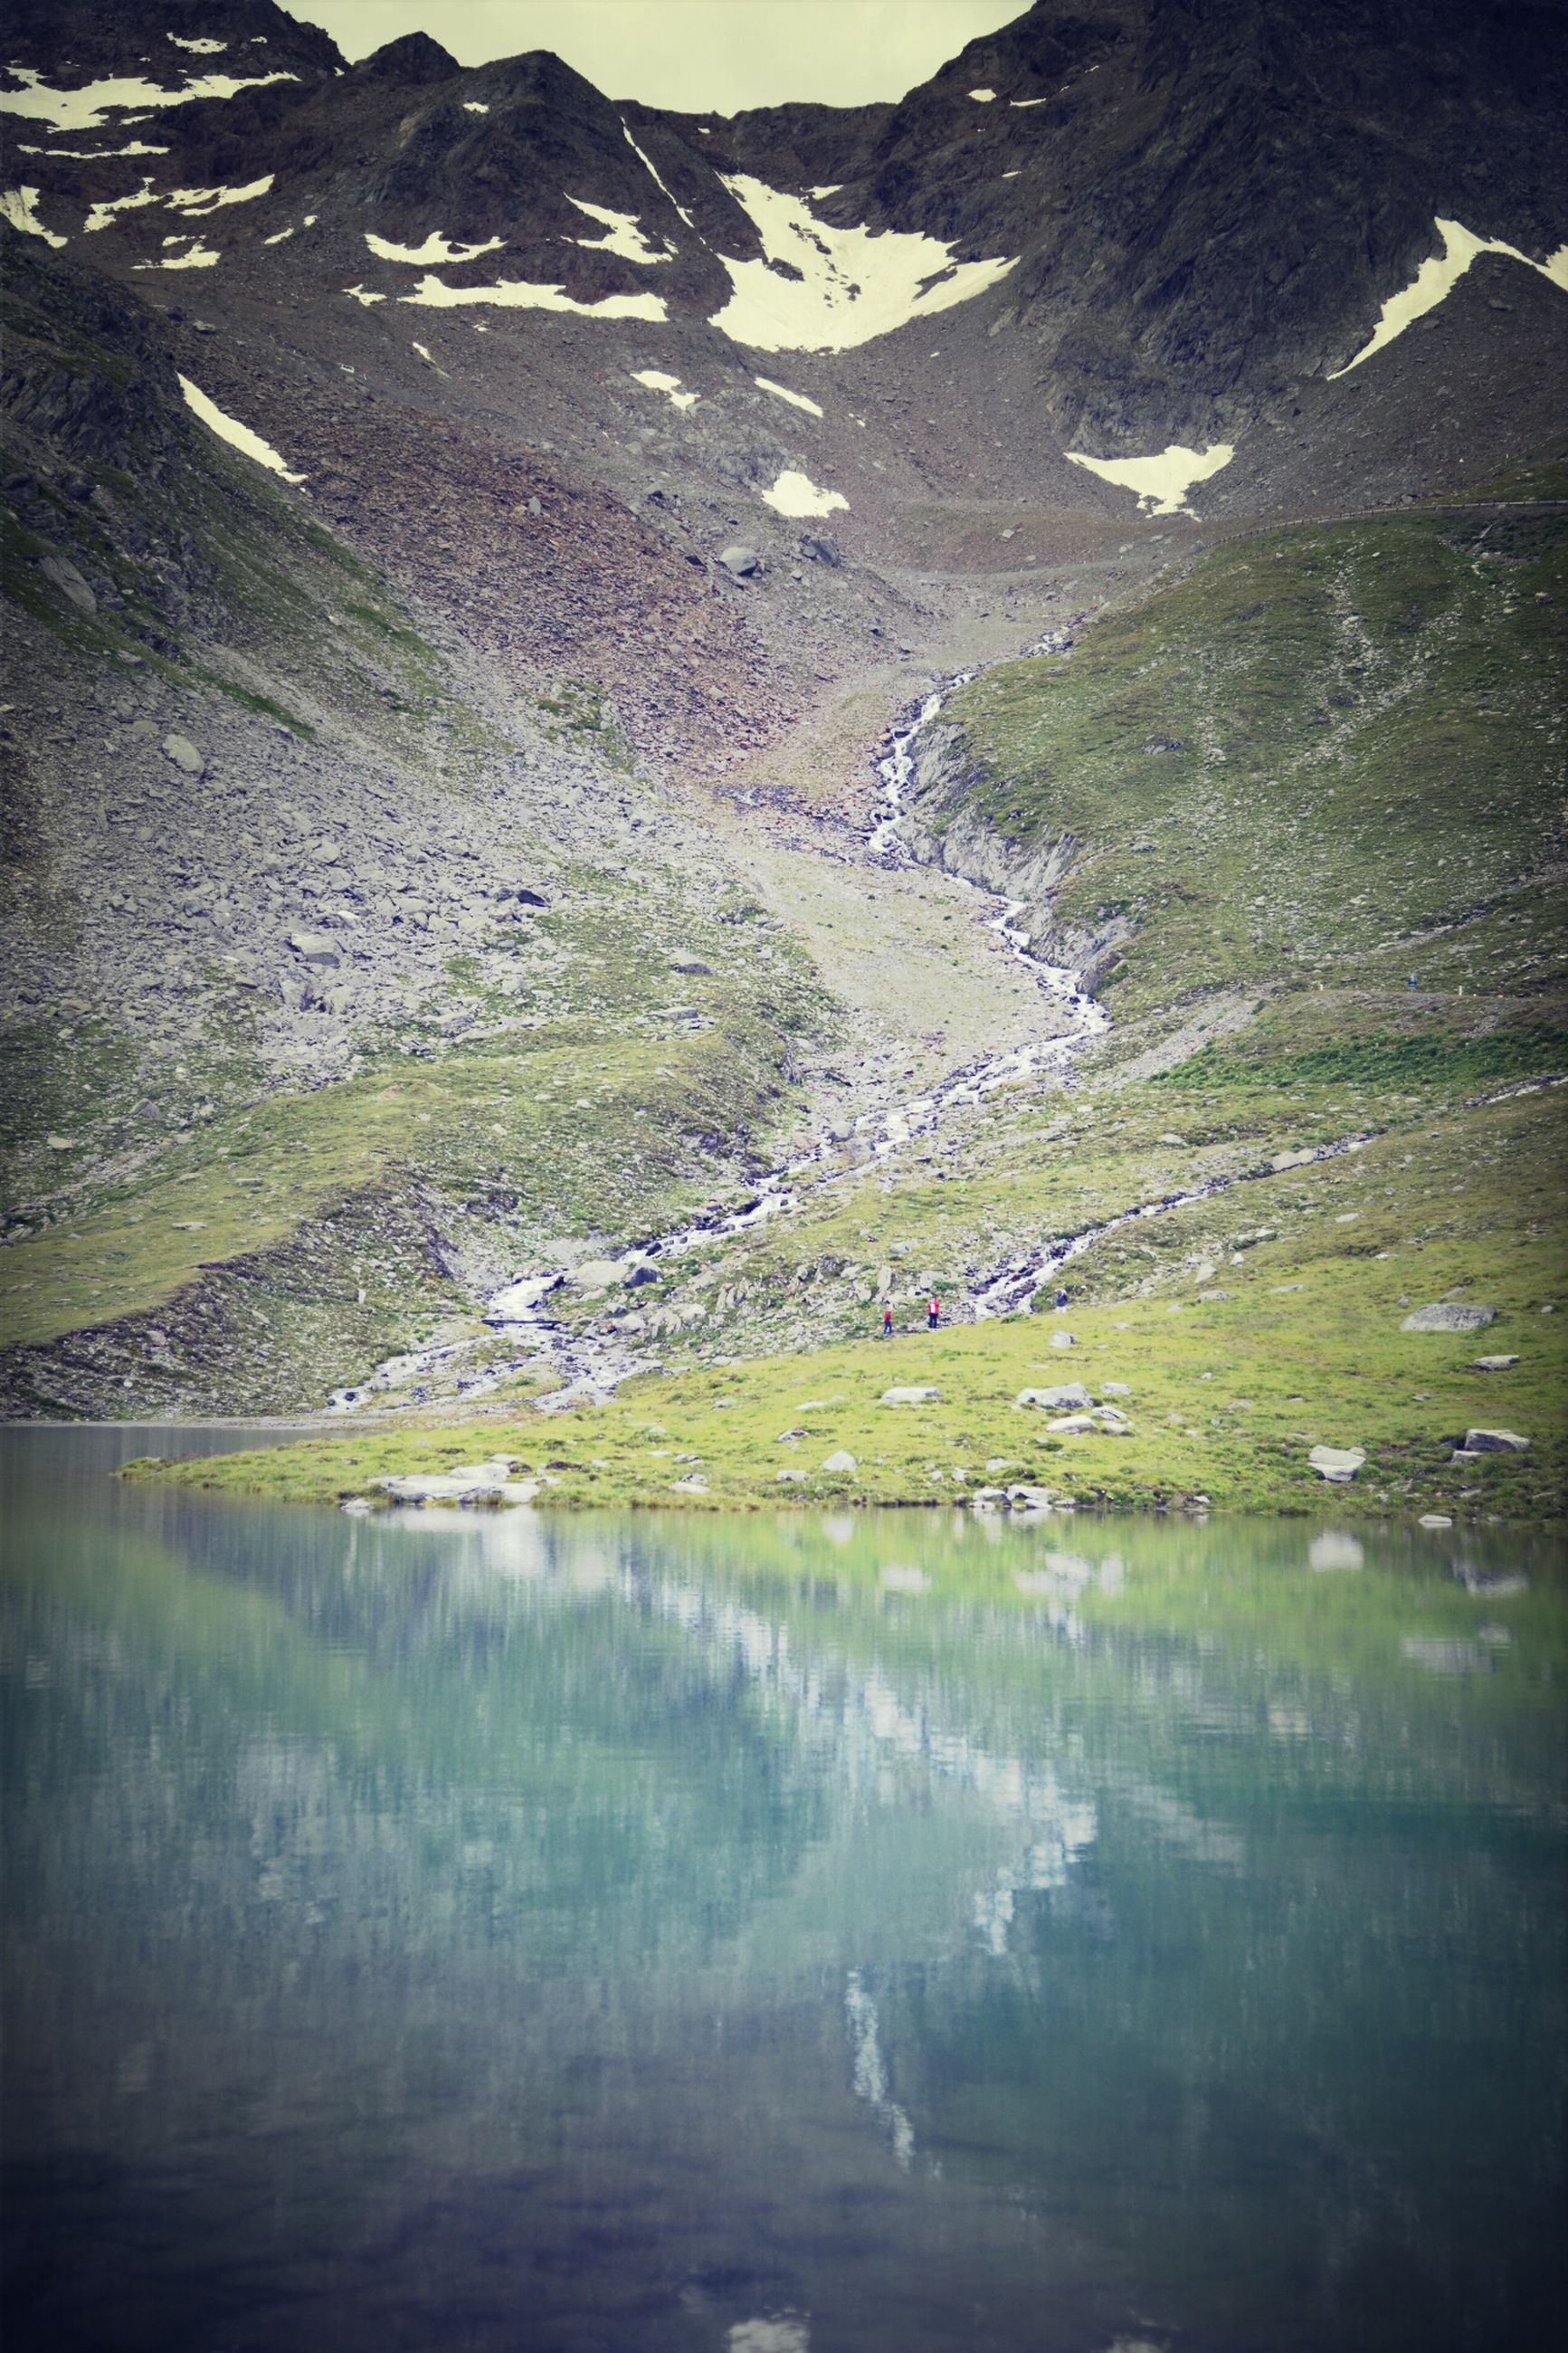 mountain, water, tranquil scene, tranquility, lake, scenics, beauty in nature, nature, reflection, mountain range, waterfront, river, landscape, non-urban scene, tree, idyllic, day, outdoors, remote, no people